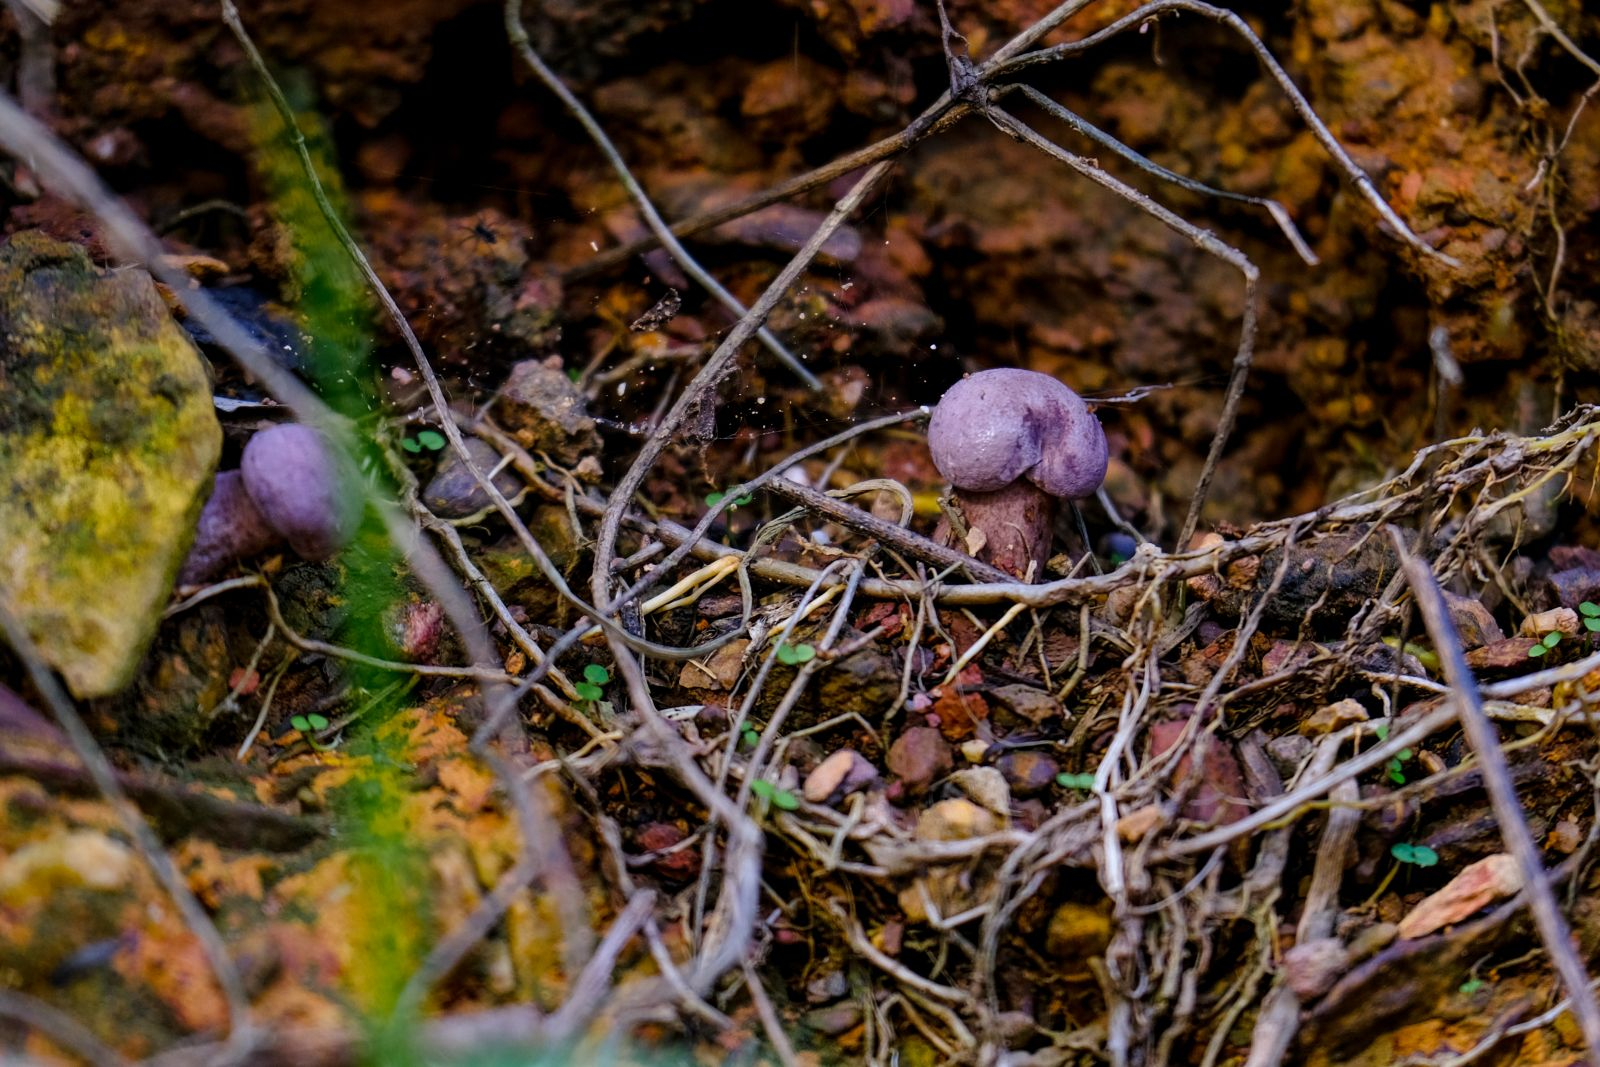 The first mushrooms